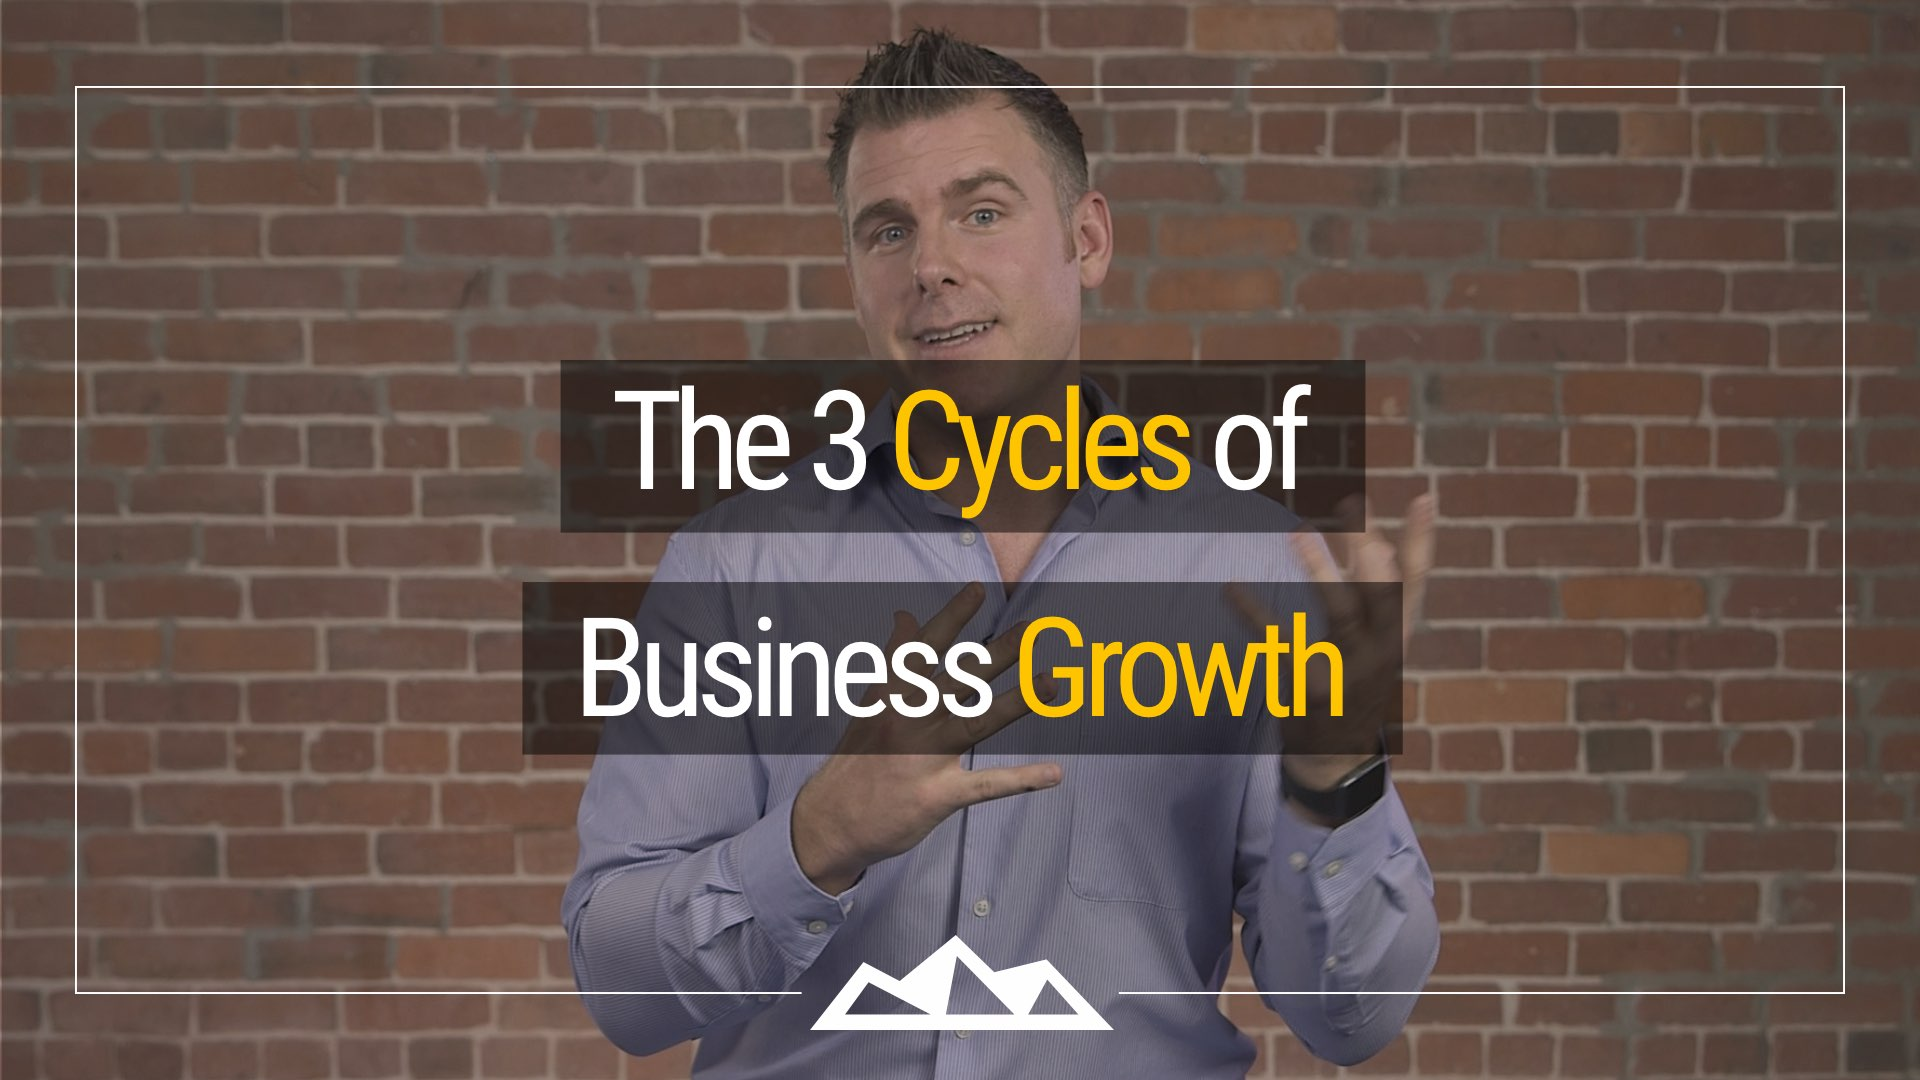 The 3 Cycles of Business Growth: Top Line, Cost Control, Market Reach